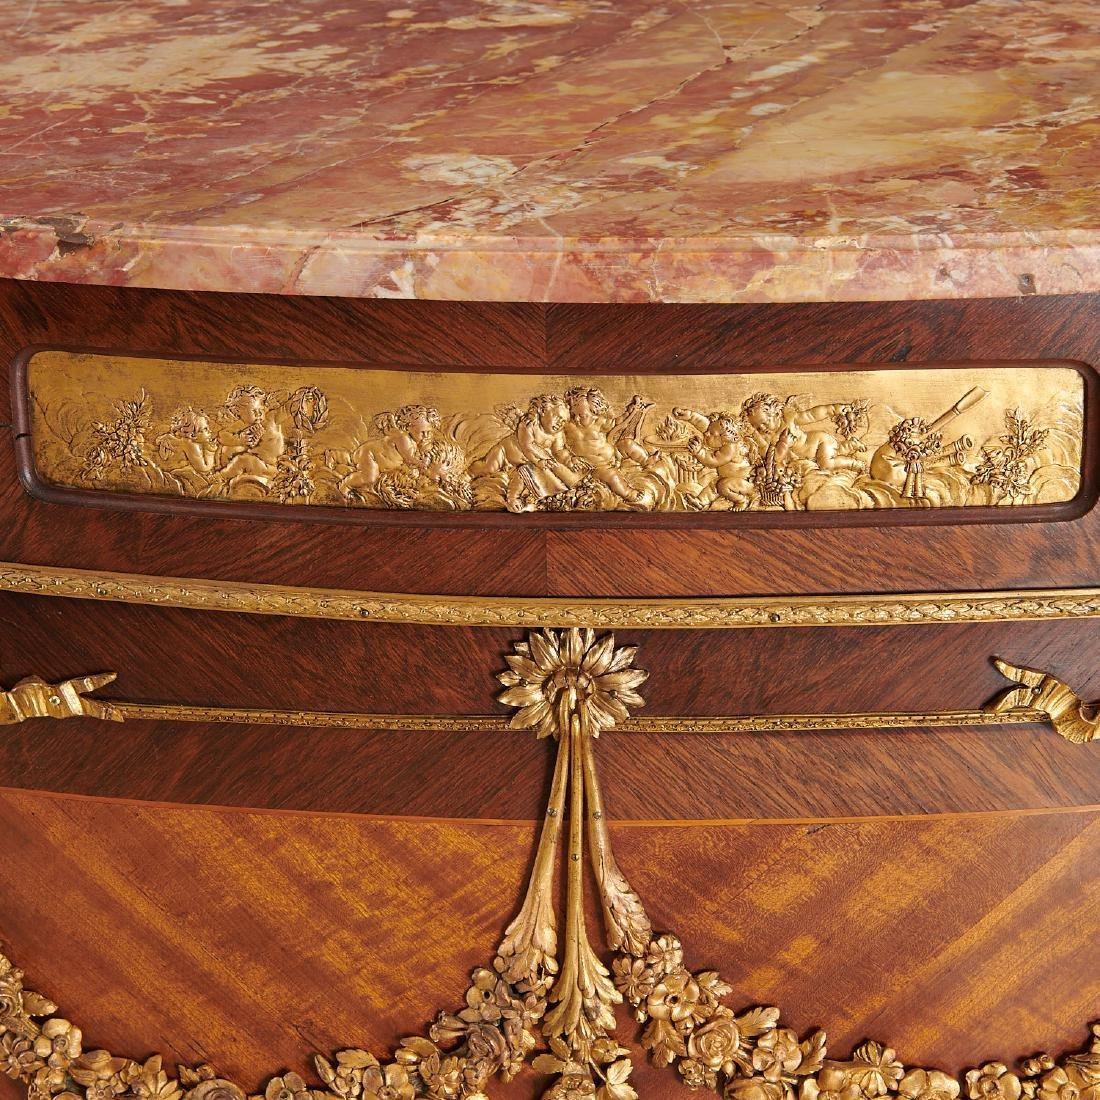 Louis XVI style demi-lune commode after Linke - 3